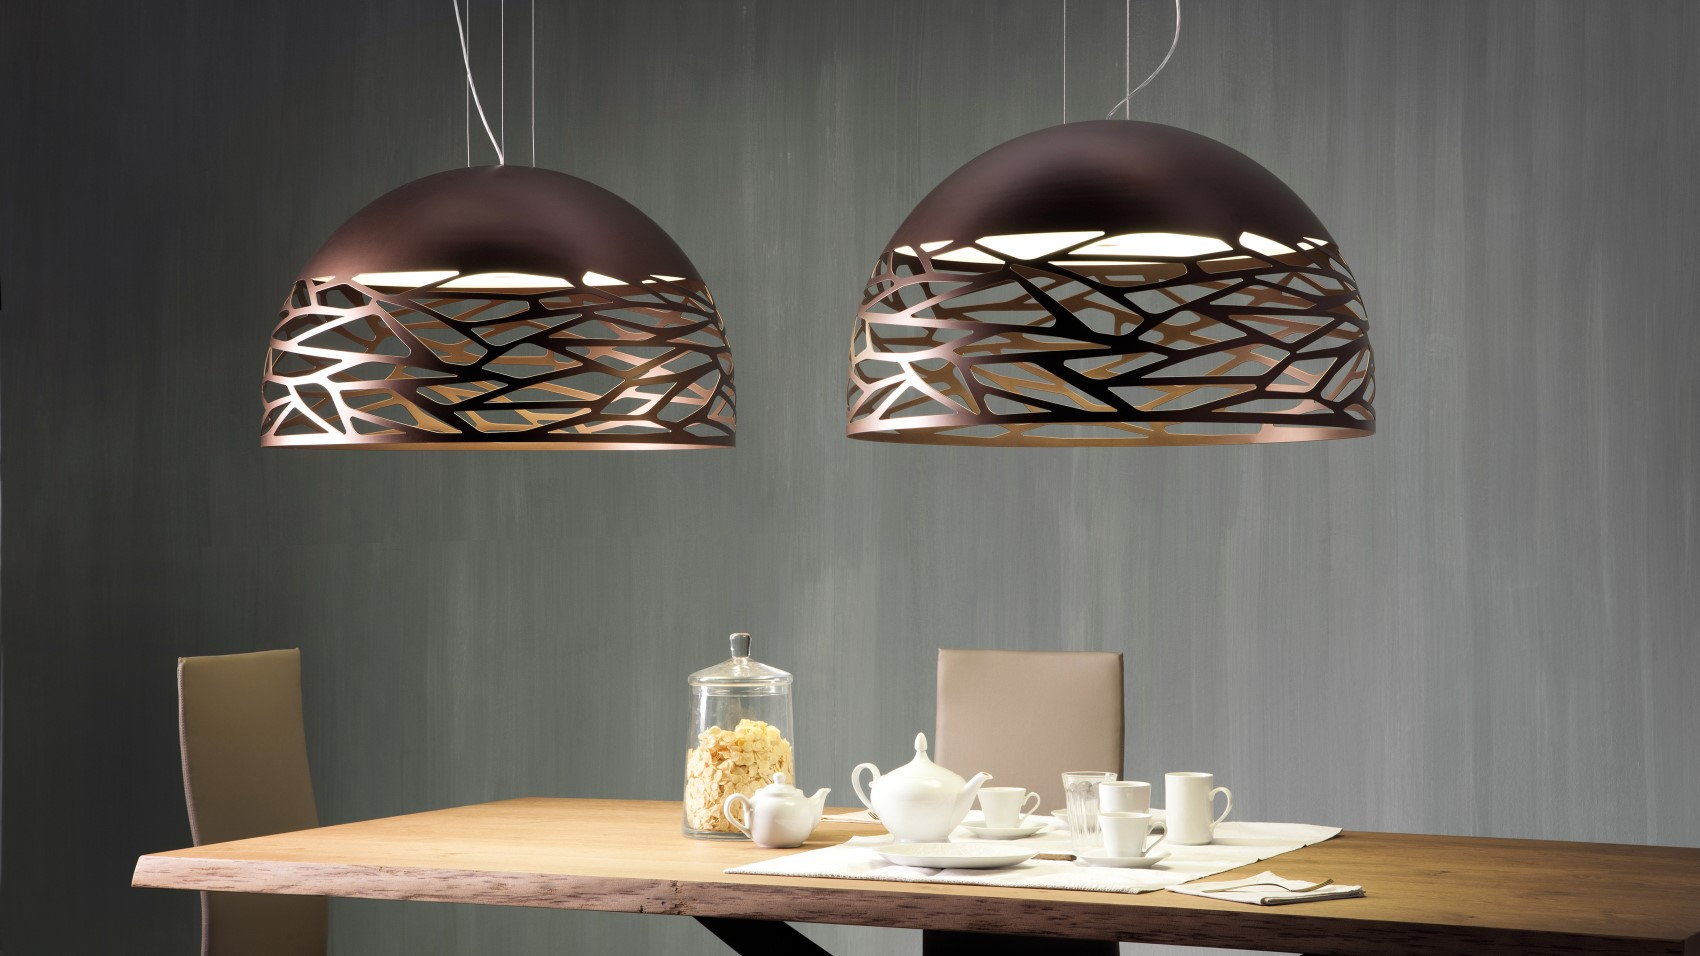 functional artsy contemporary lighting fixtures